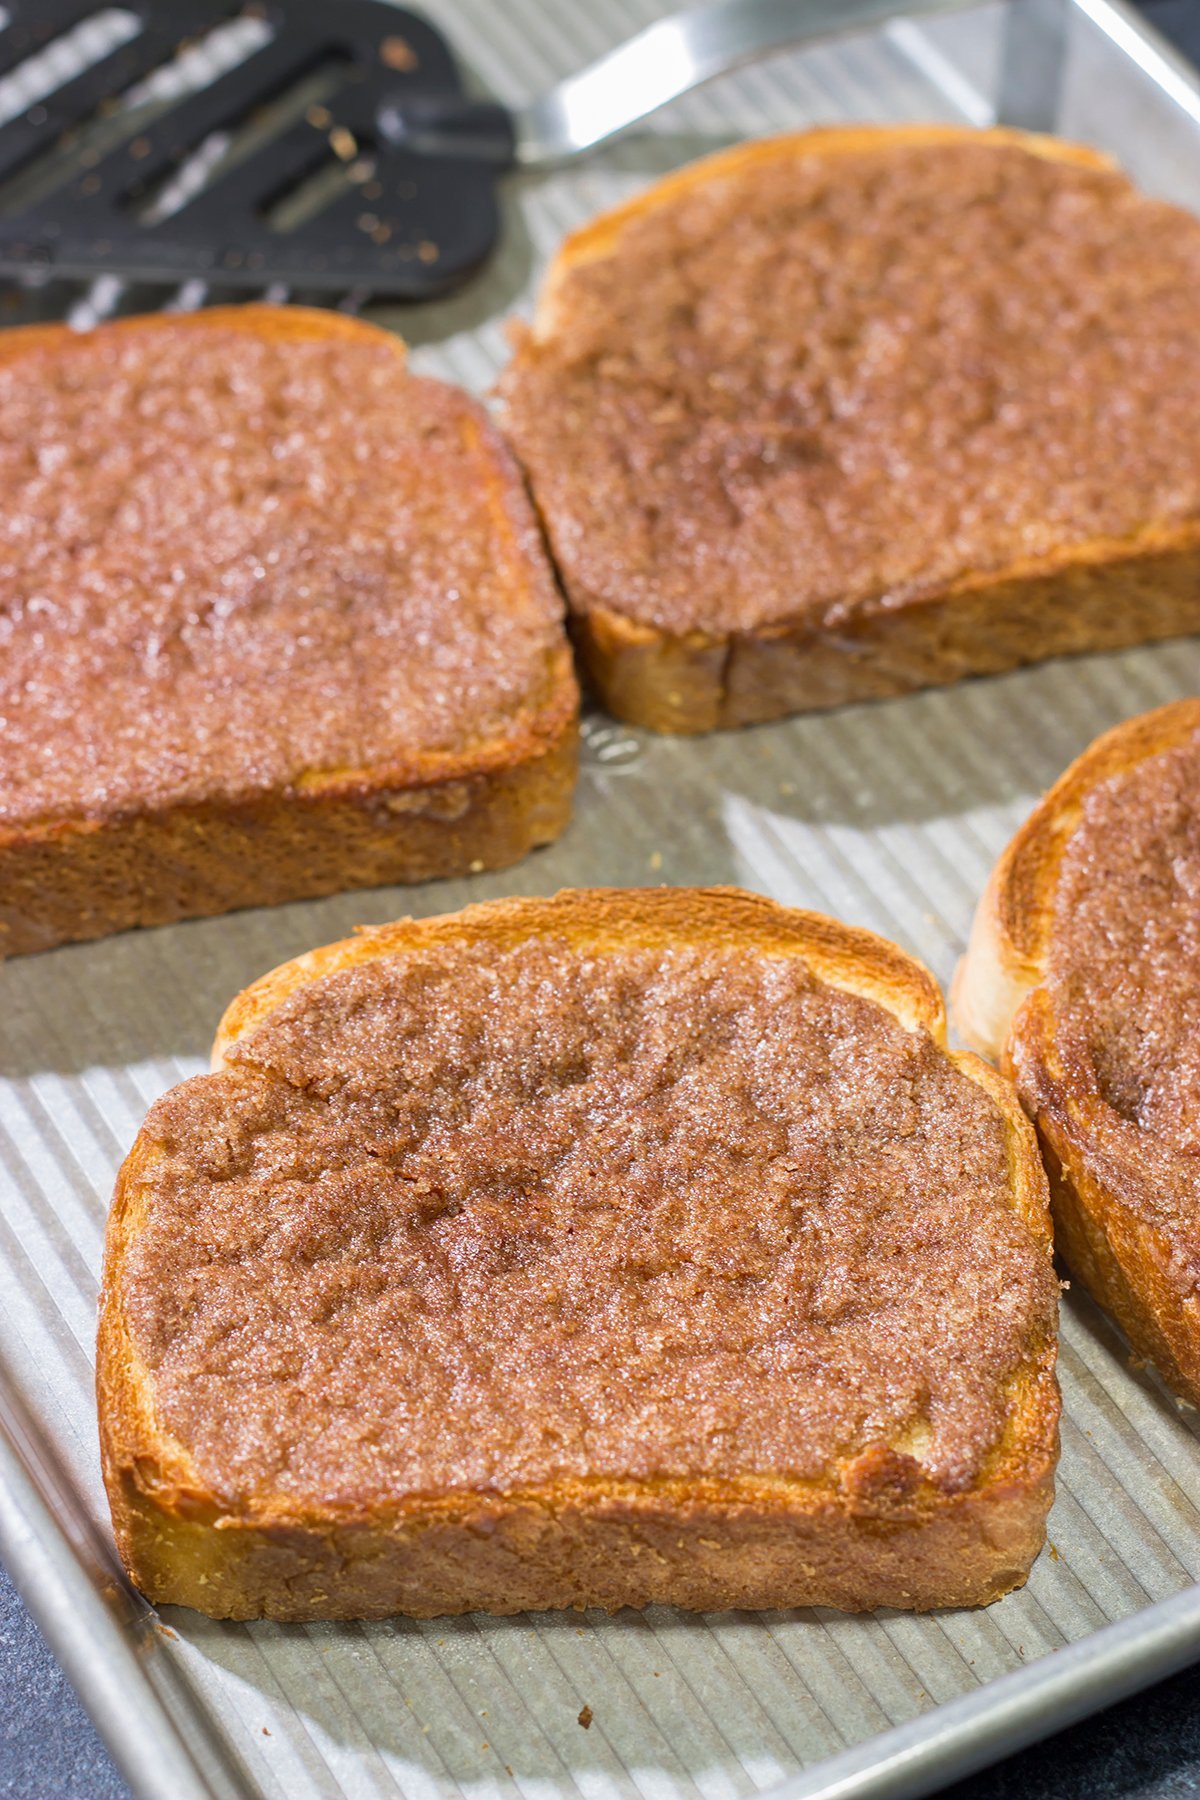 If you're looking for the ultimate start to the day, turn on the oven and make a batch of this Homemade Cinnamon Toast!